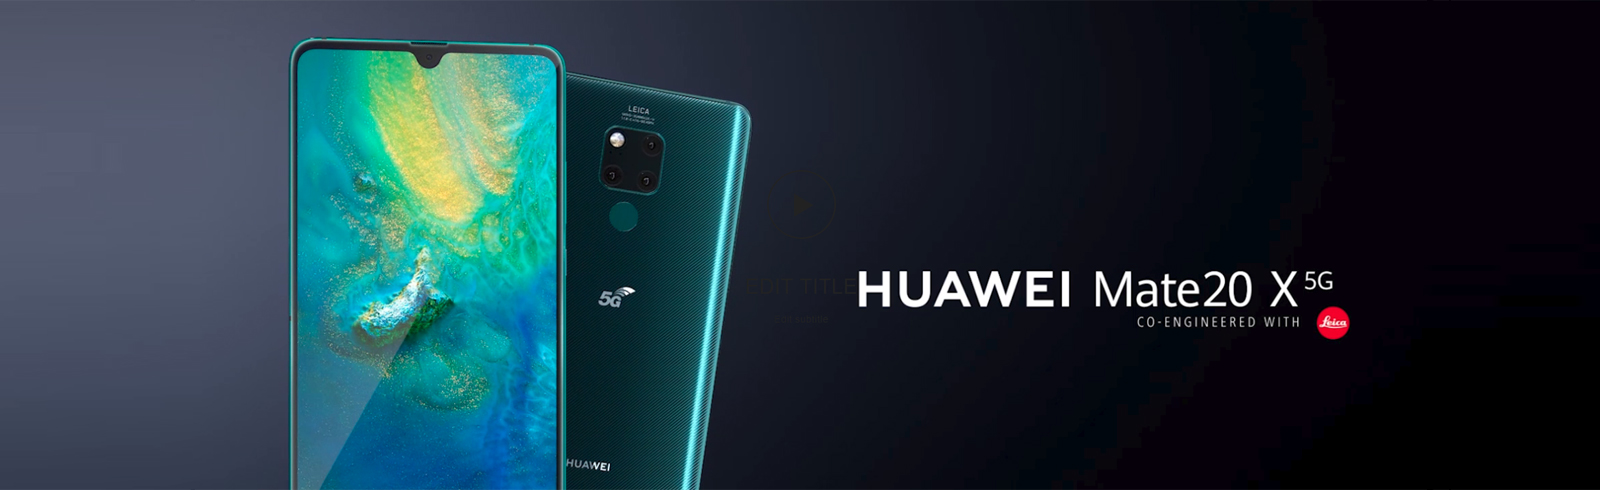 Huawei Mate 20 X 5G is available in the UK and Switzerland